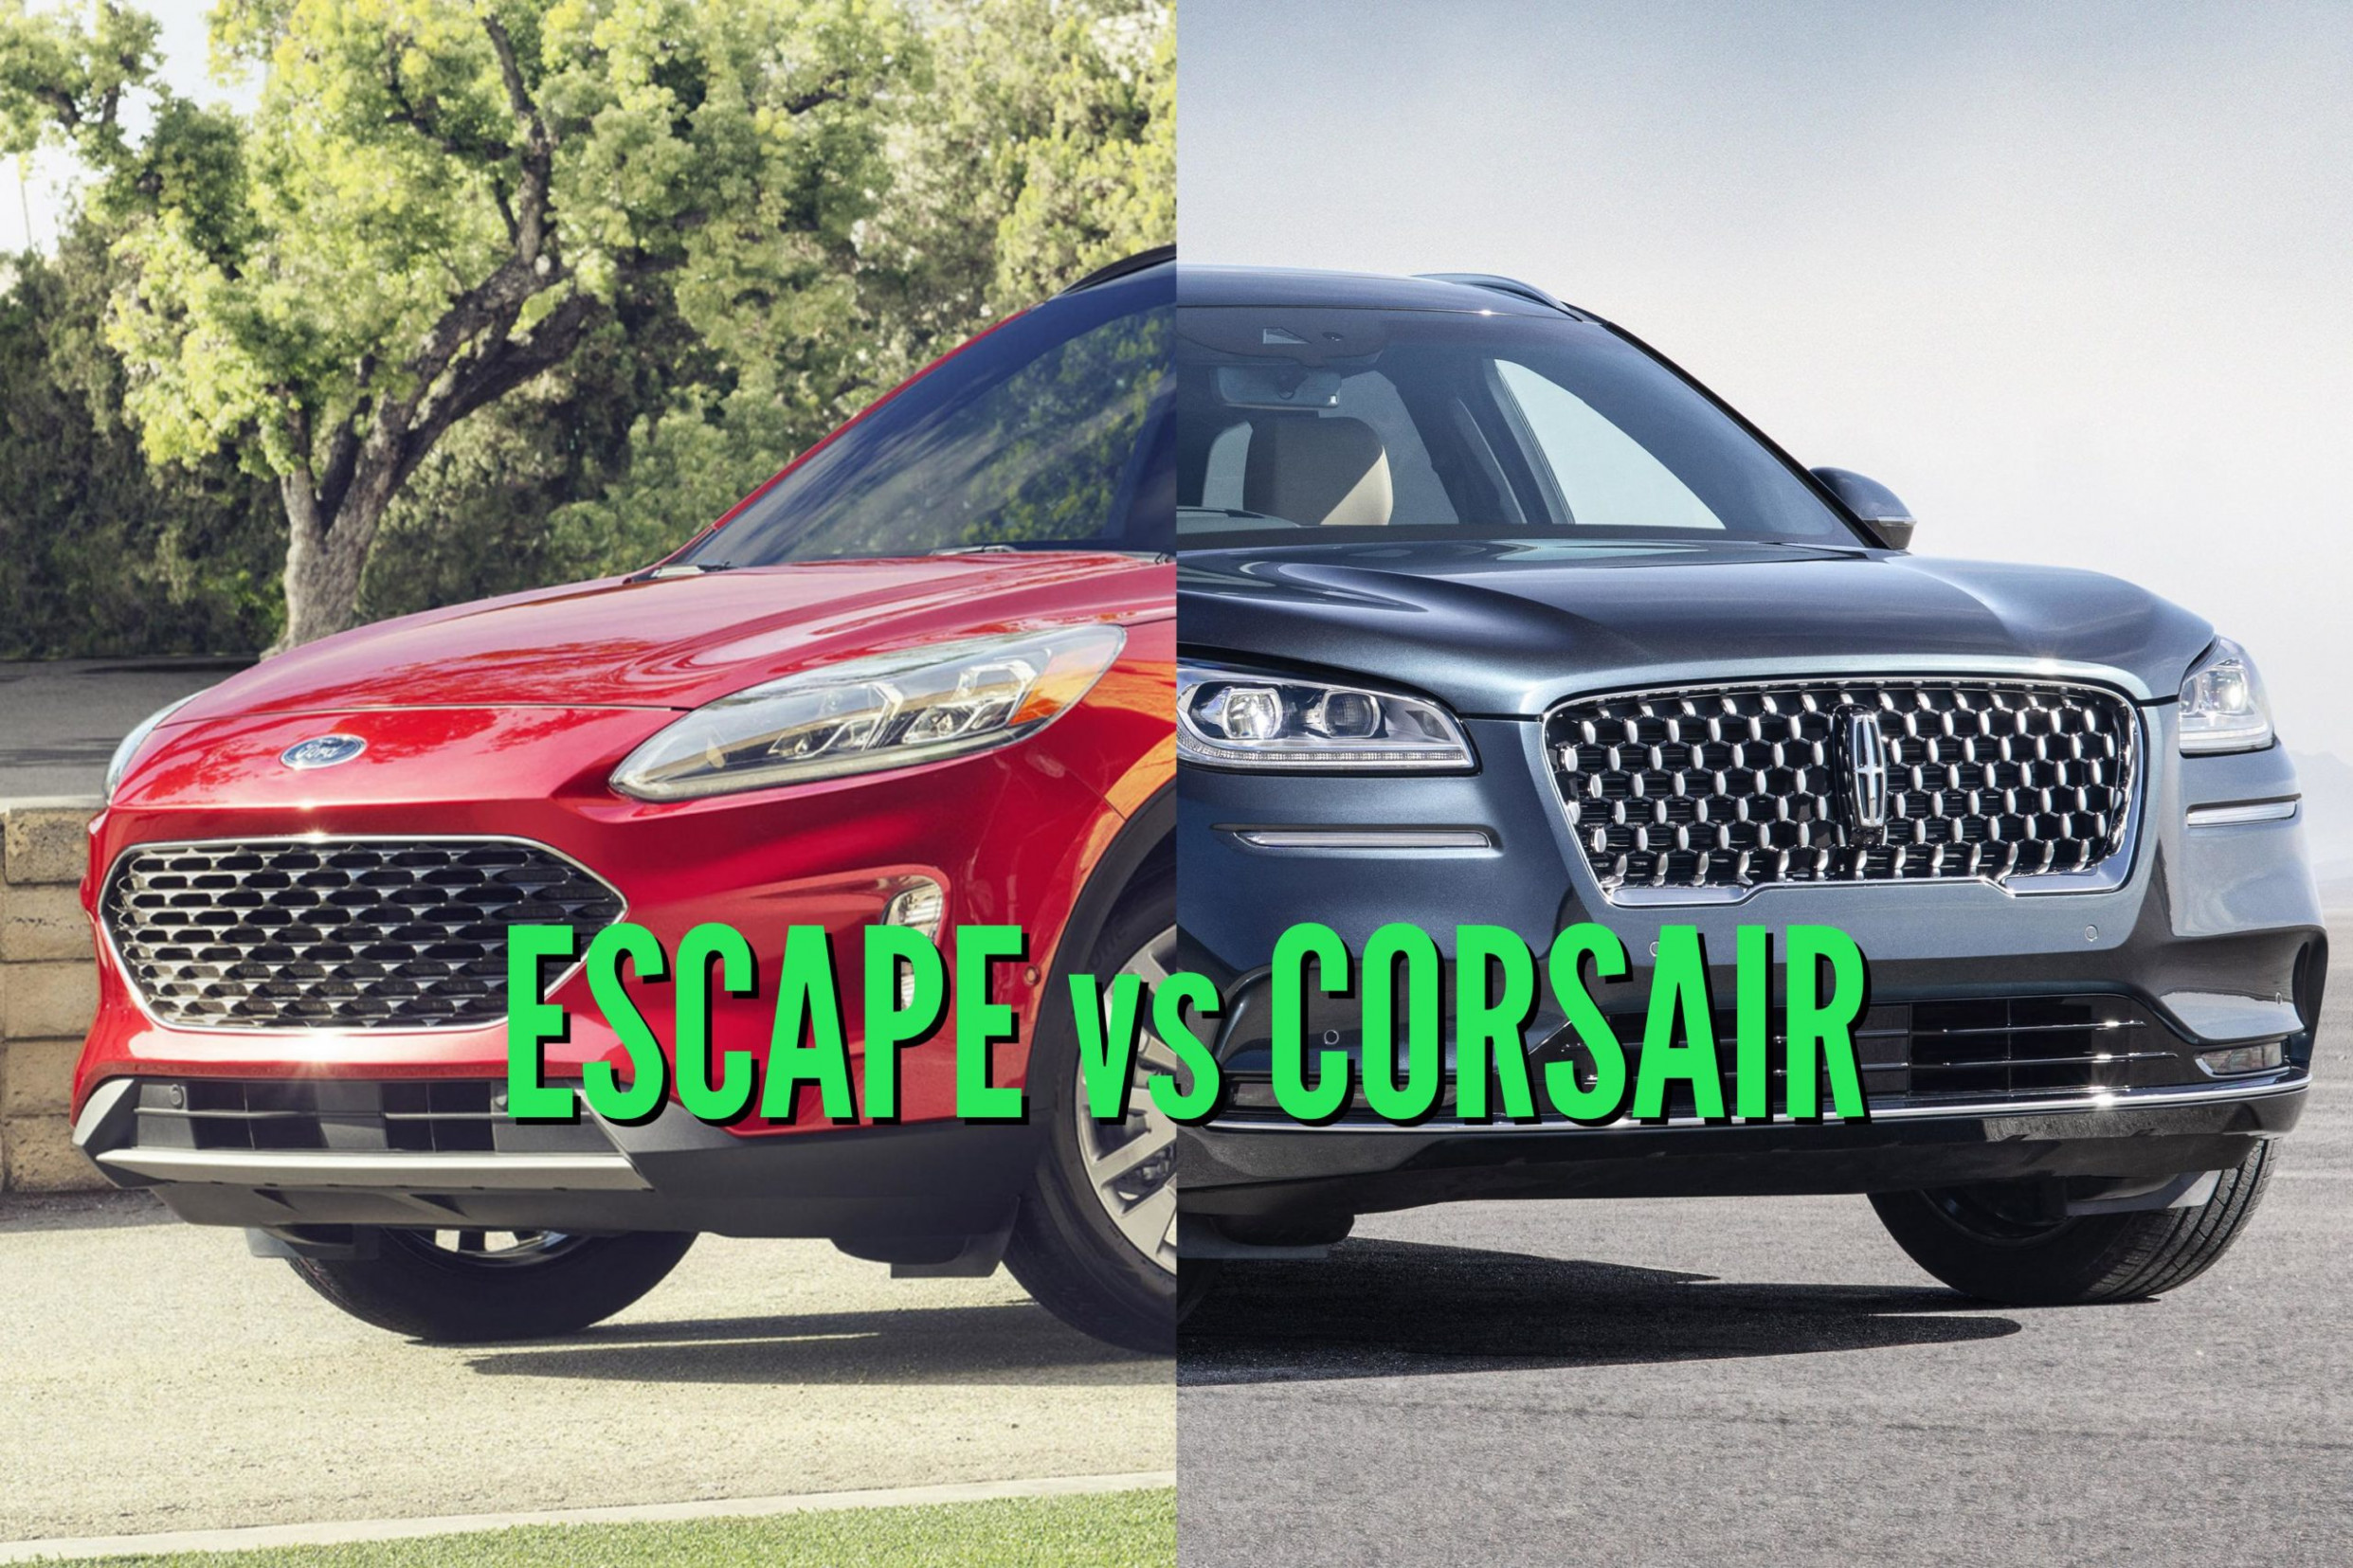 10 Ford Escape vs Lincoln Corsair: Differences compared side by side